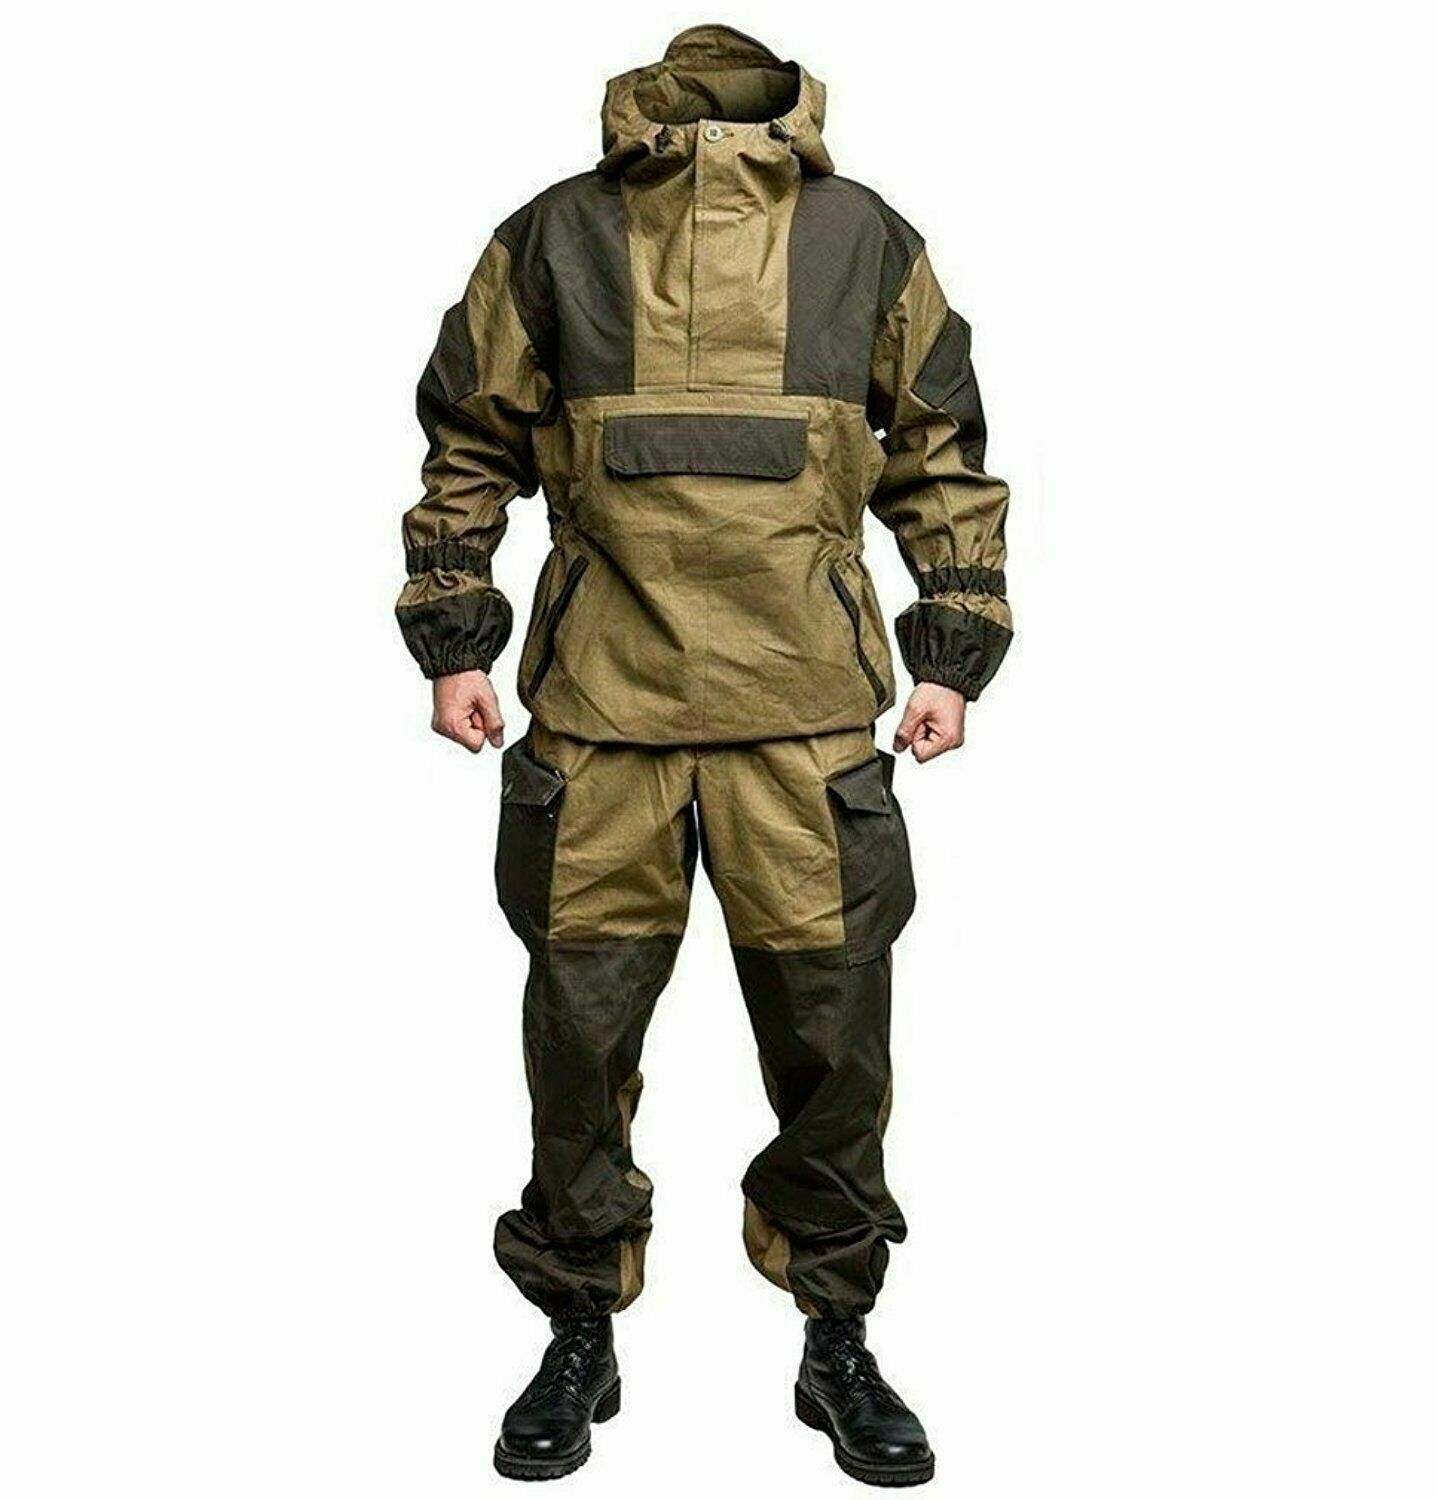 Bars GORKA-4 Genuine Russian Army Special Military  BDU Uniform Camo Hunting Suit  best sale